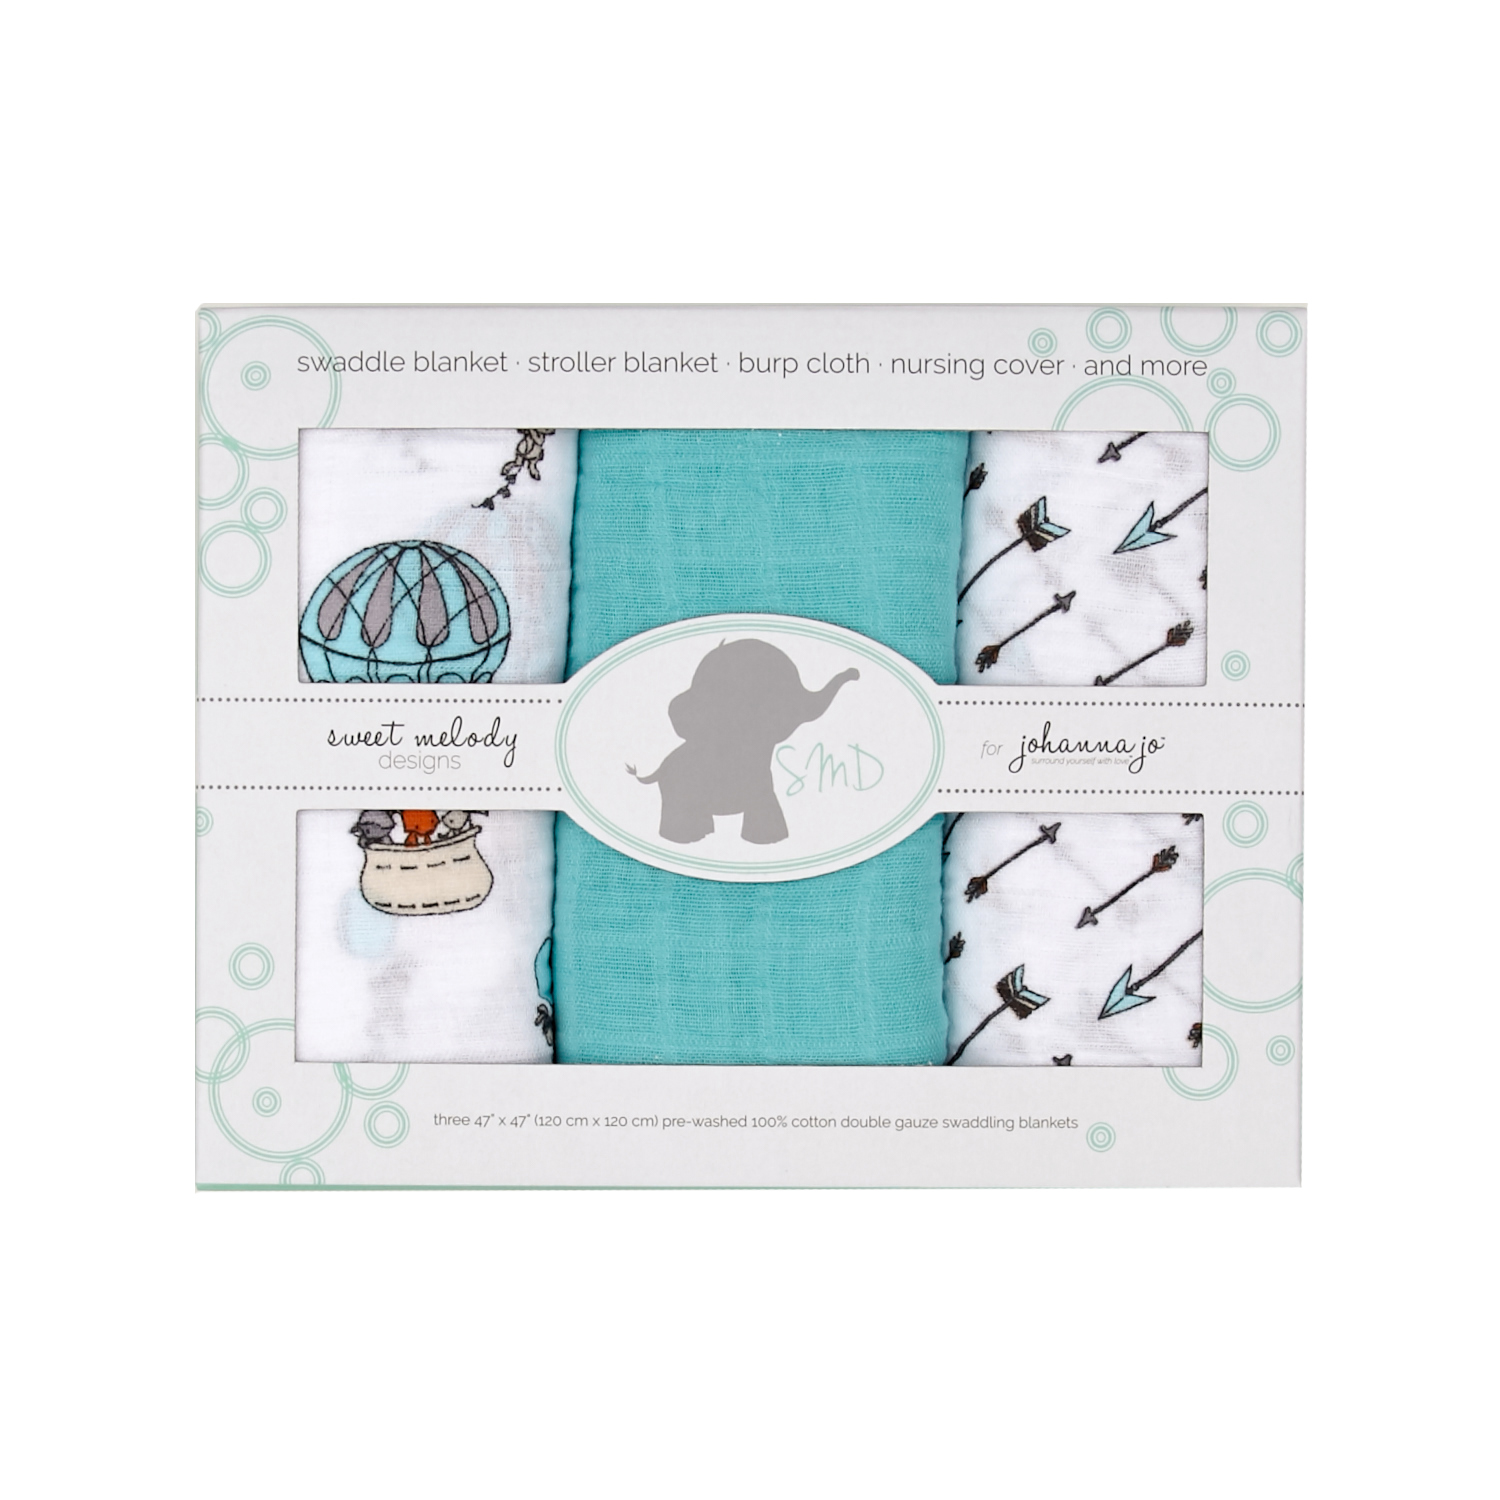 Embrace Double Gauze Swaddle 3 Pack Away We Go by Shannon in USA